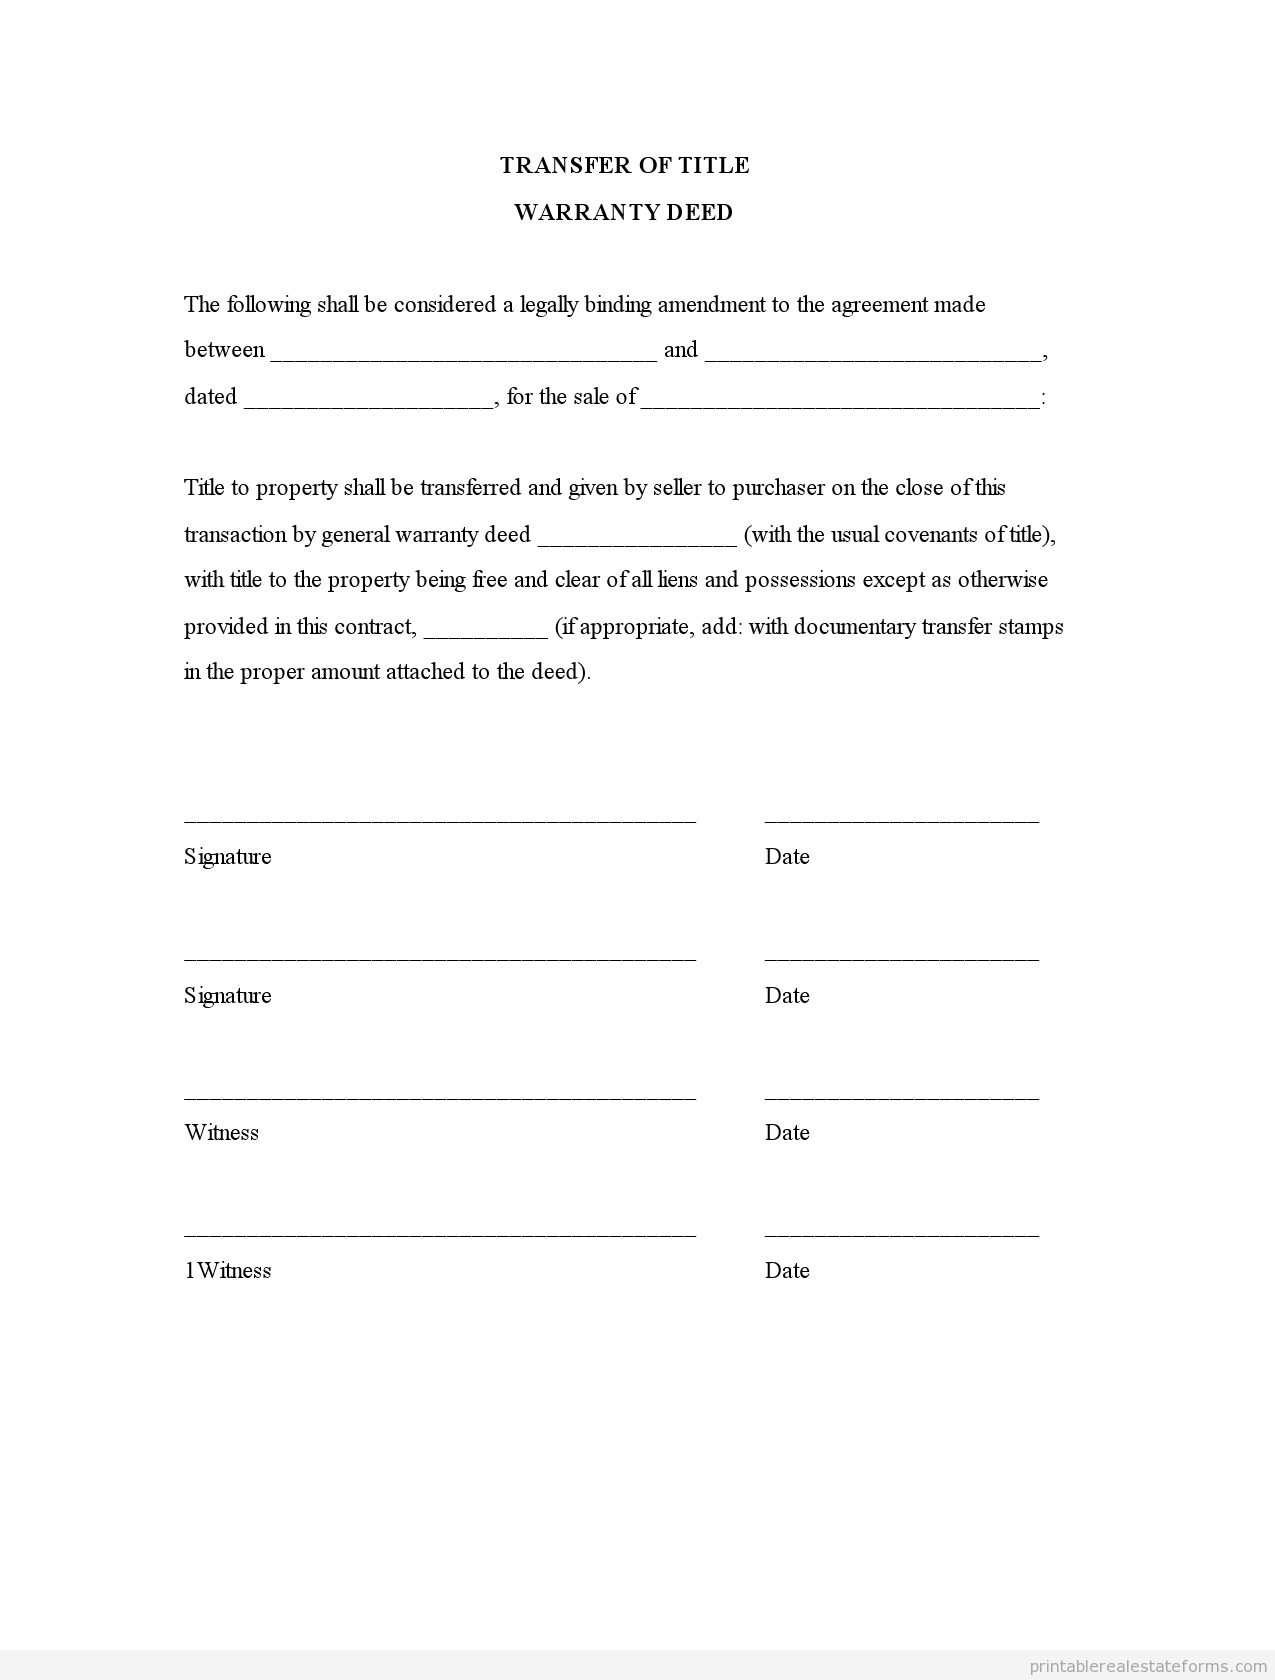 Printable transfer of title warranty deed template 2015 – General Warranty Deed